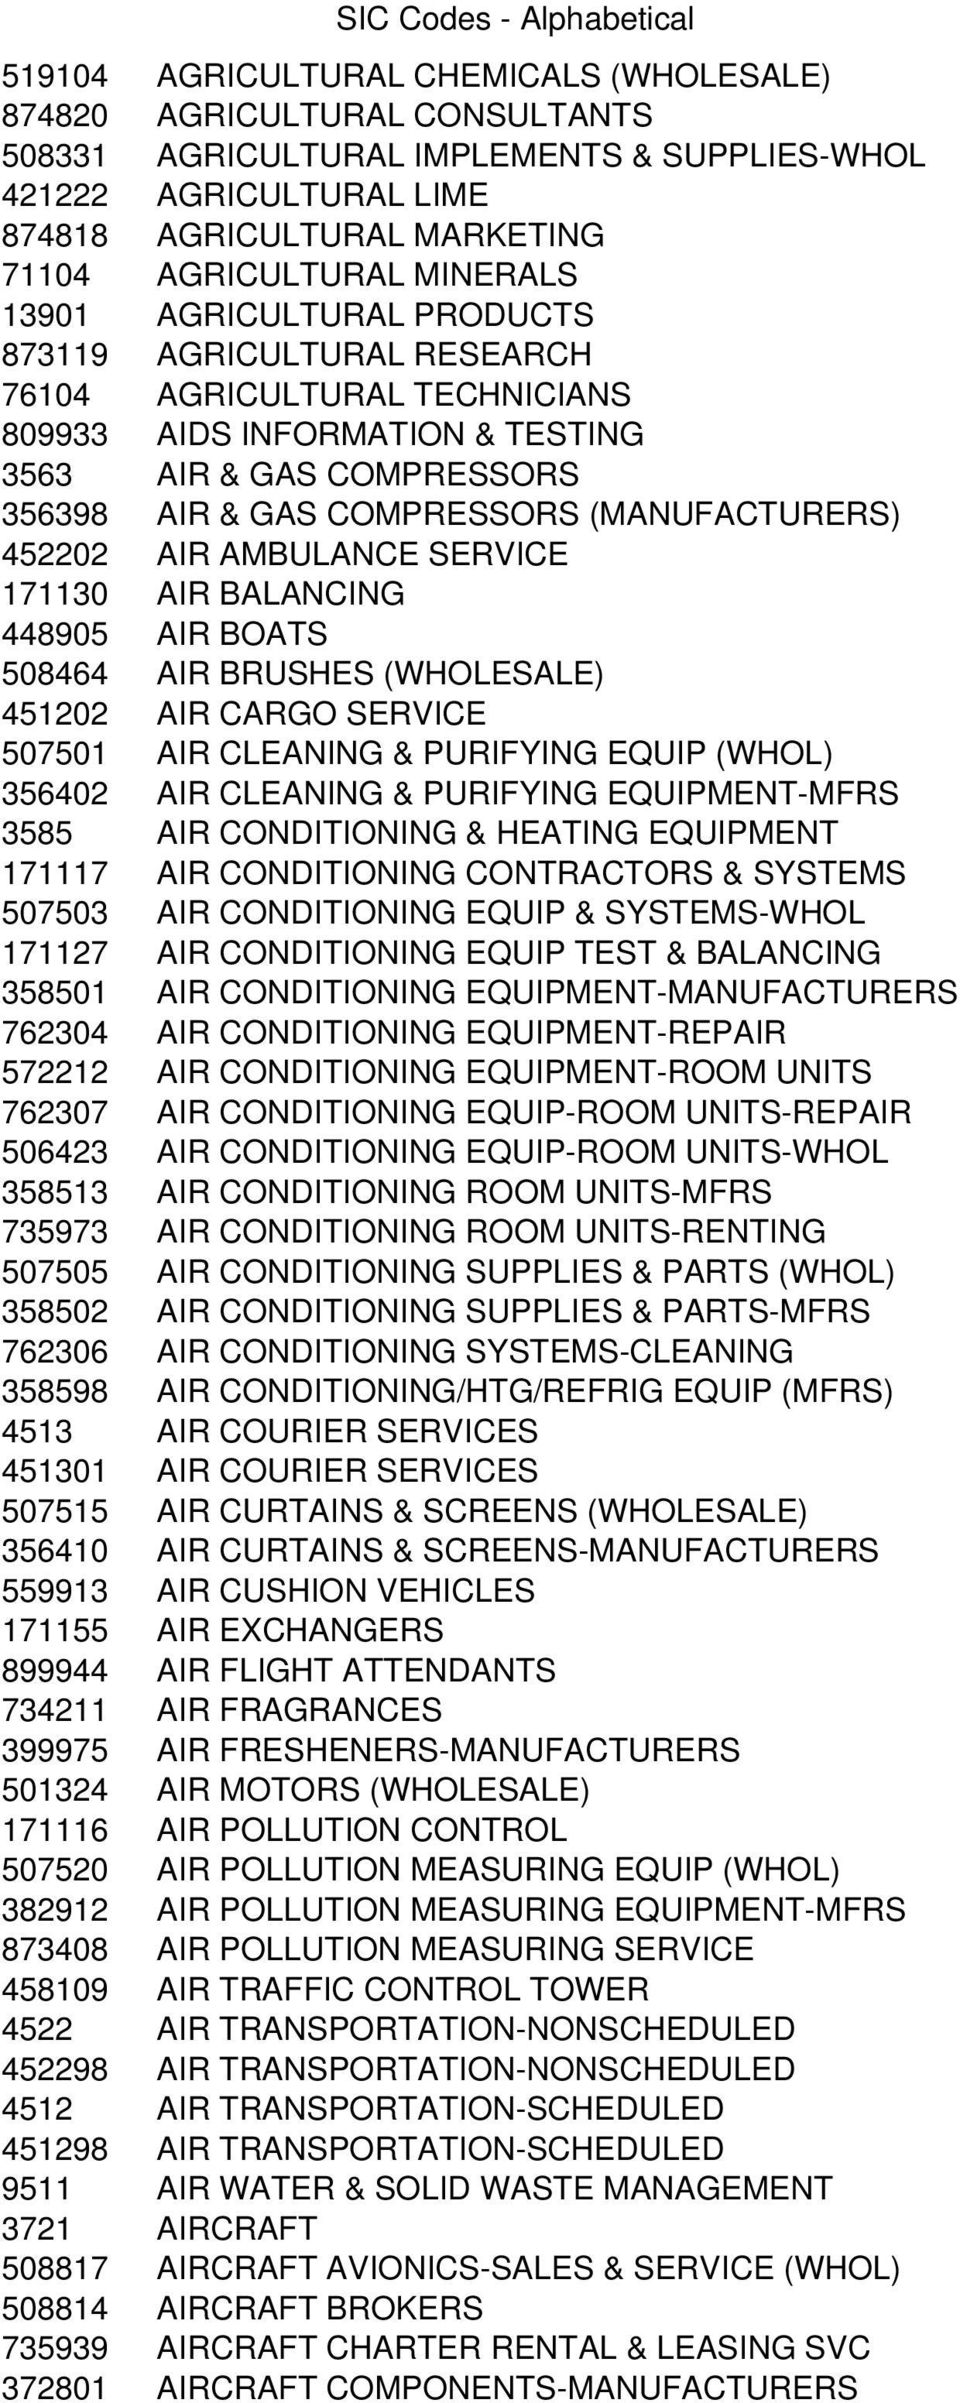 (MANUFACTURERS) 452202 AIR AMBULANCE SERVICE 171130 AIR BALANCING 448905 AIR BOATS 508464 AIR BRUSHES (WHOLESALE) 451202 AIR CARGO SERVICE 507501 AIR CLEANING & PURIFYING EQUIP (WHOL) 356402 AIR